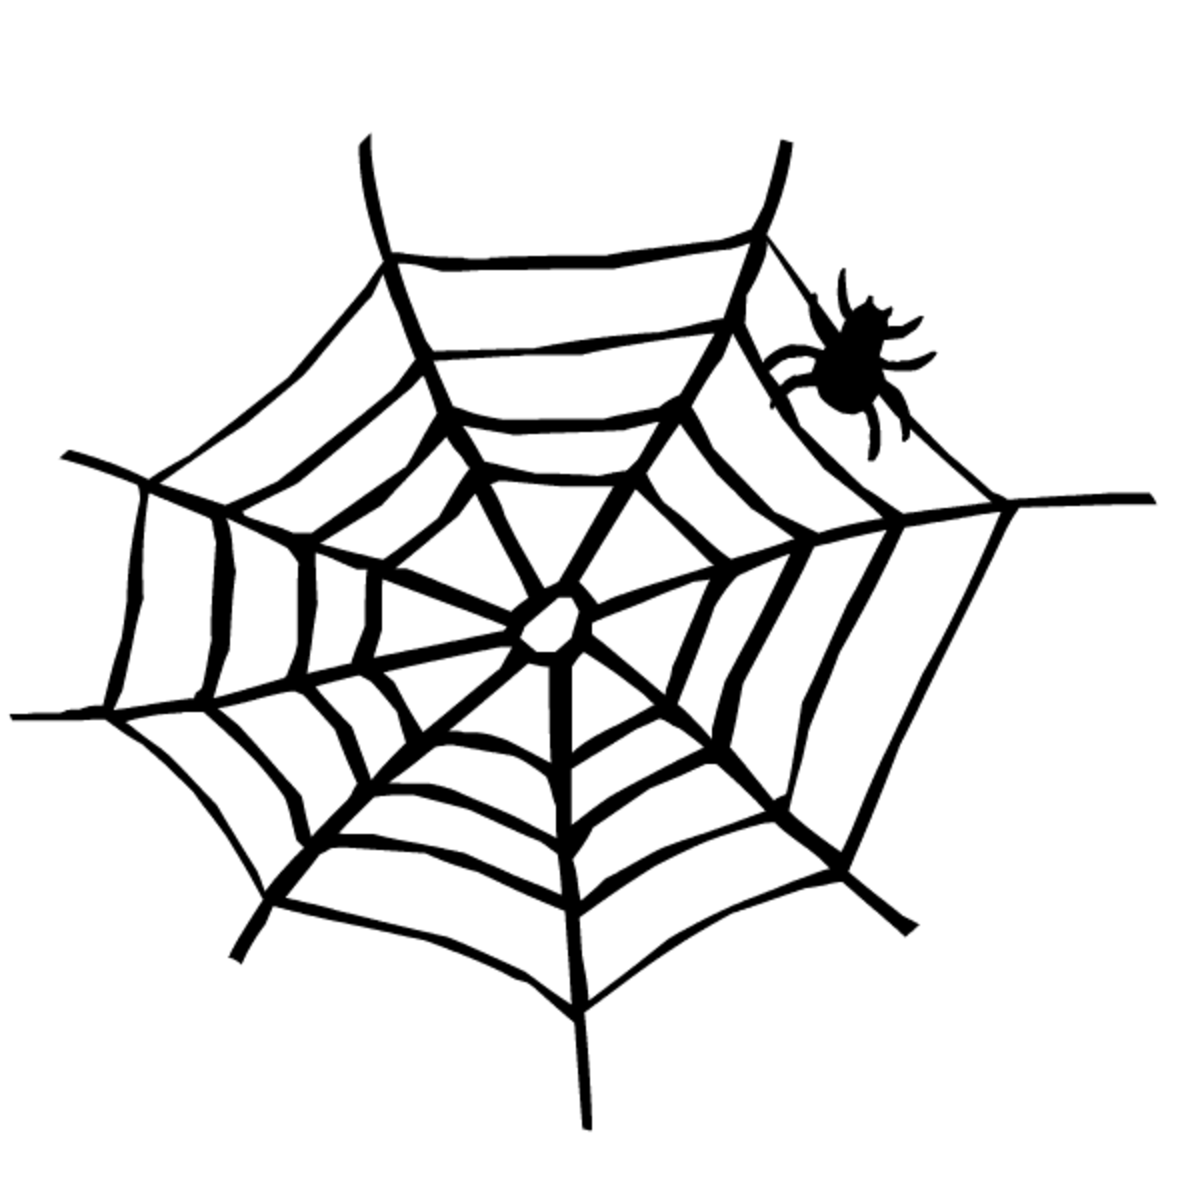 Black and white spider web and spider